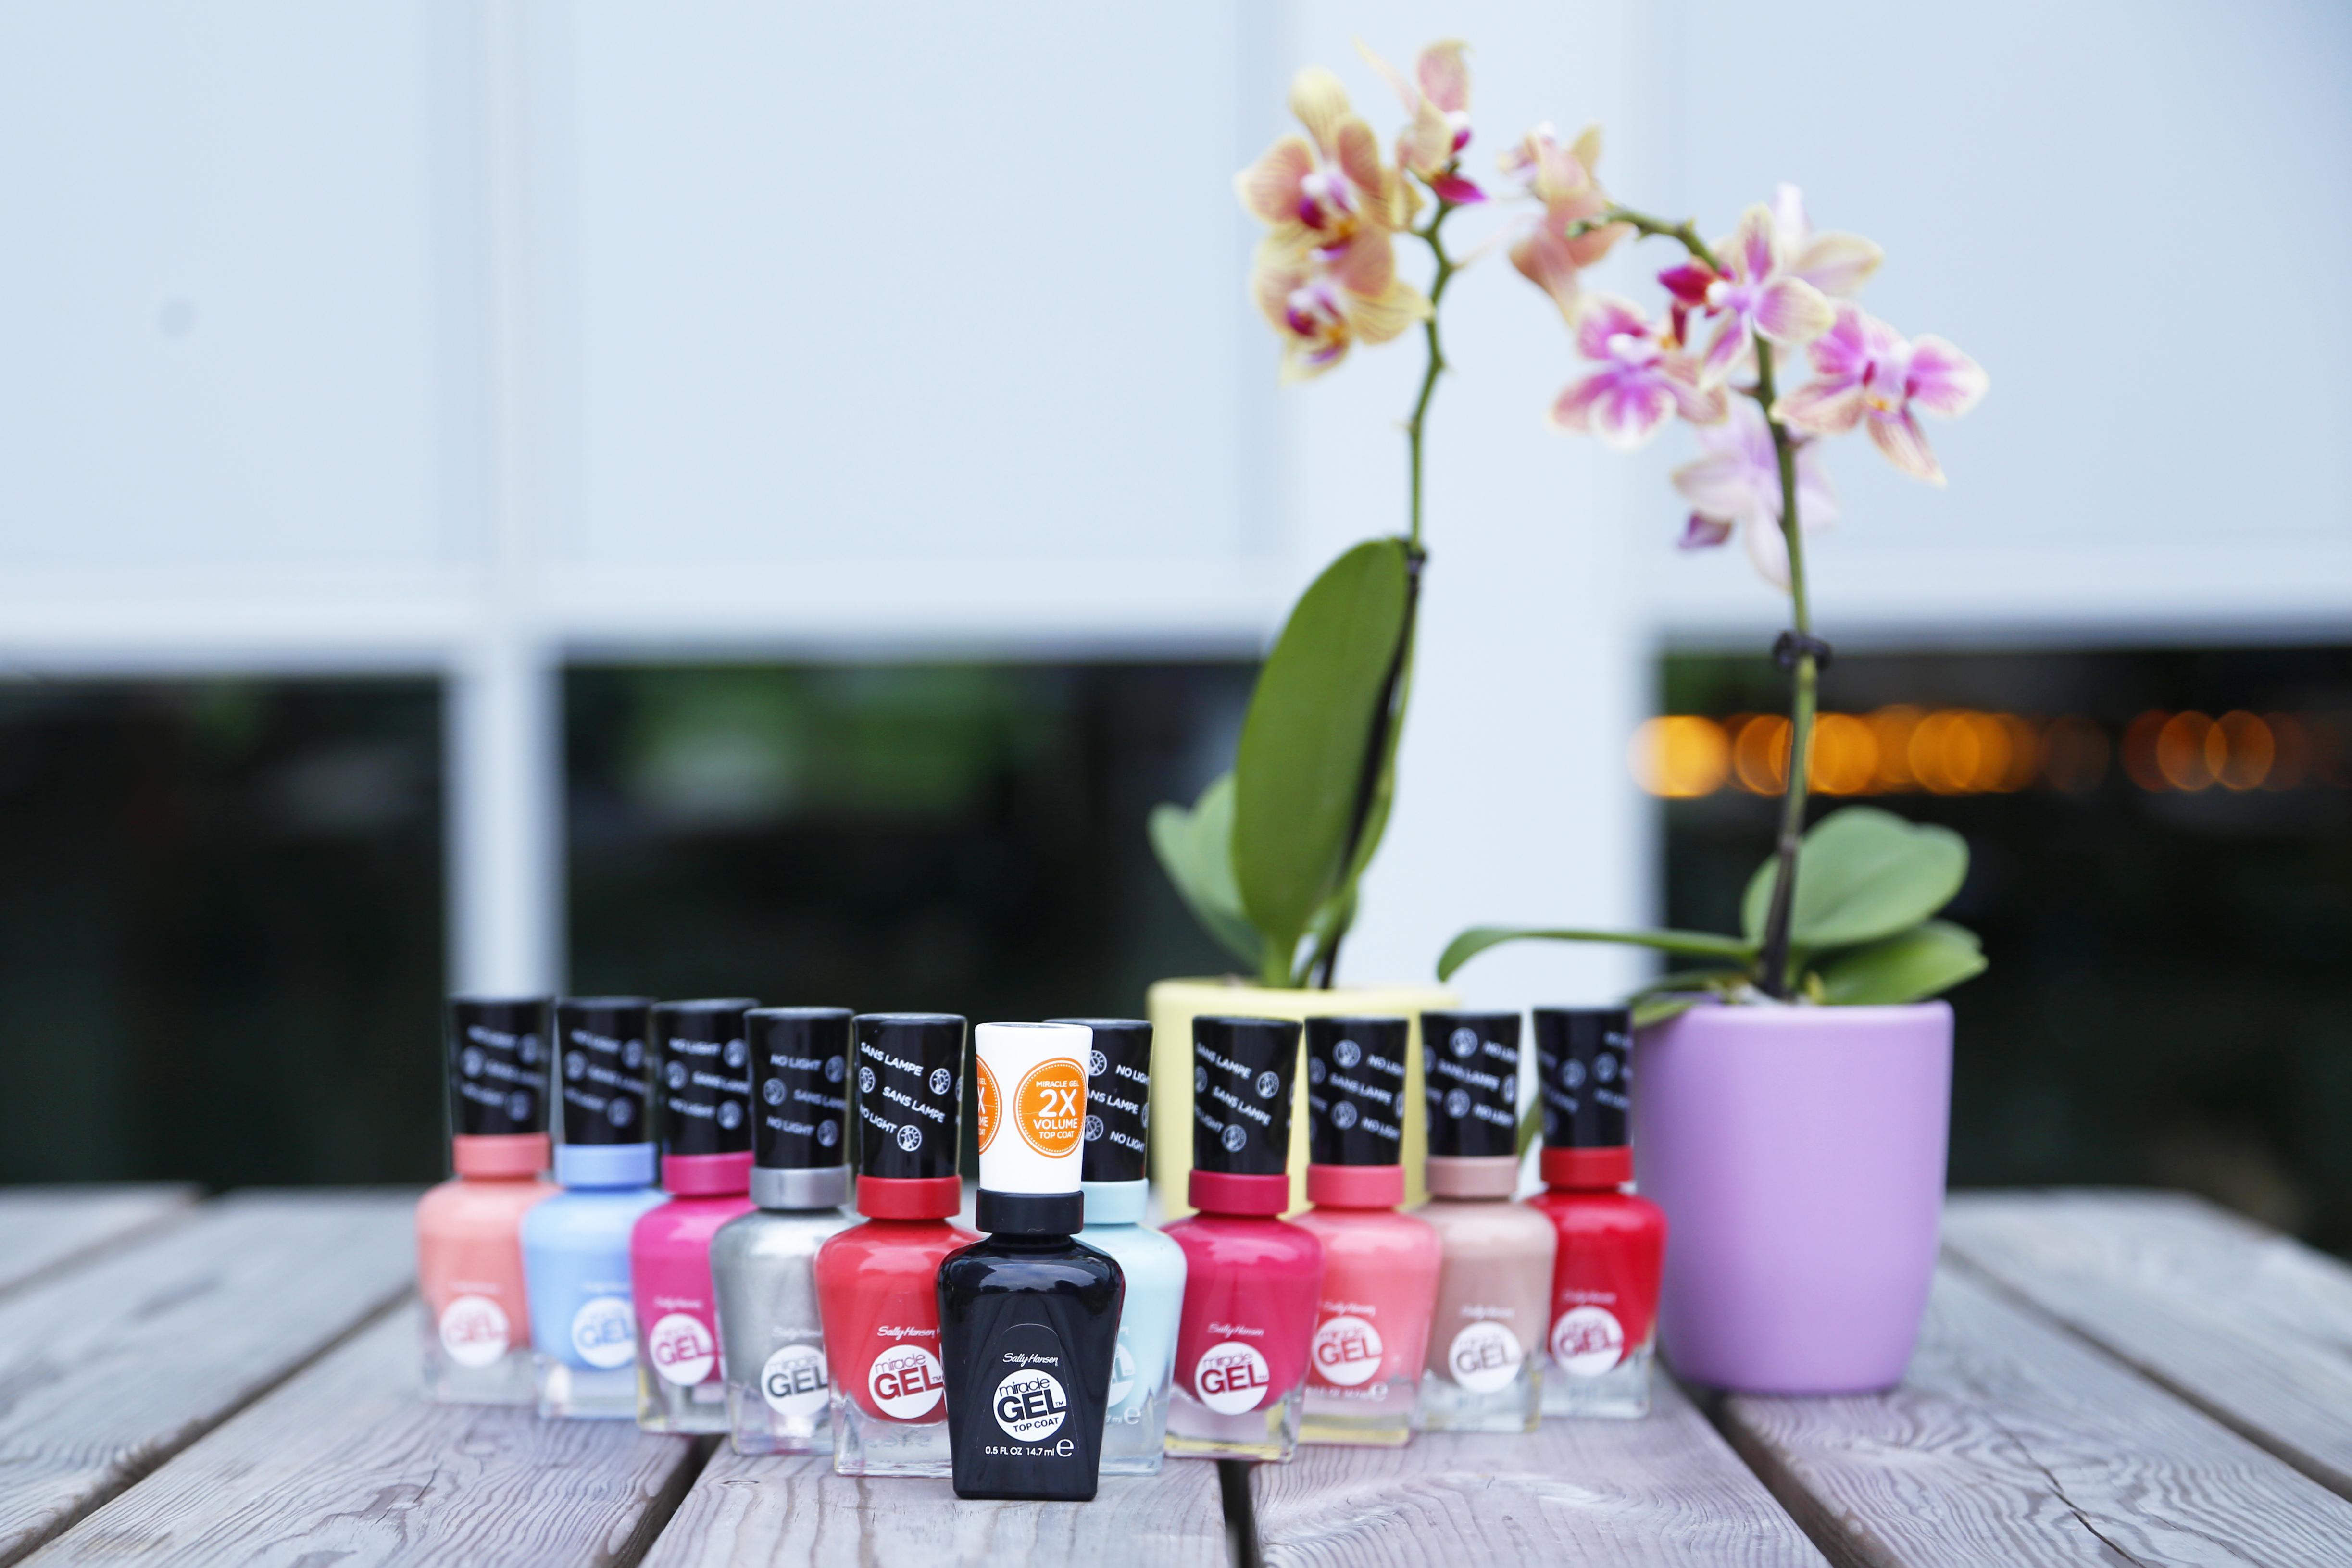 SUMMERPROOF NAILS WITH SALLY HANSEN FROM HATS TO HEELSFROM